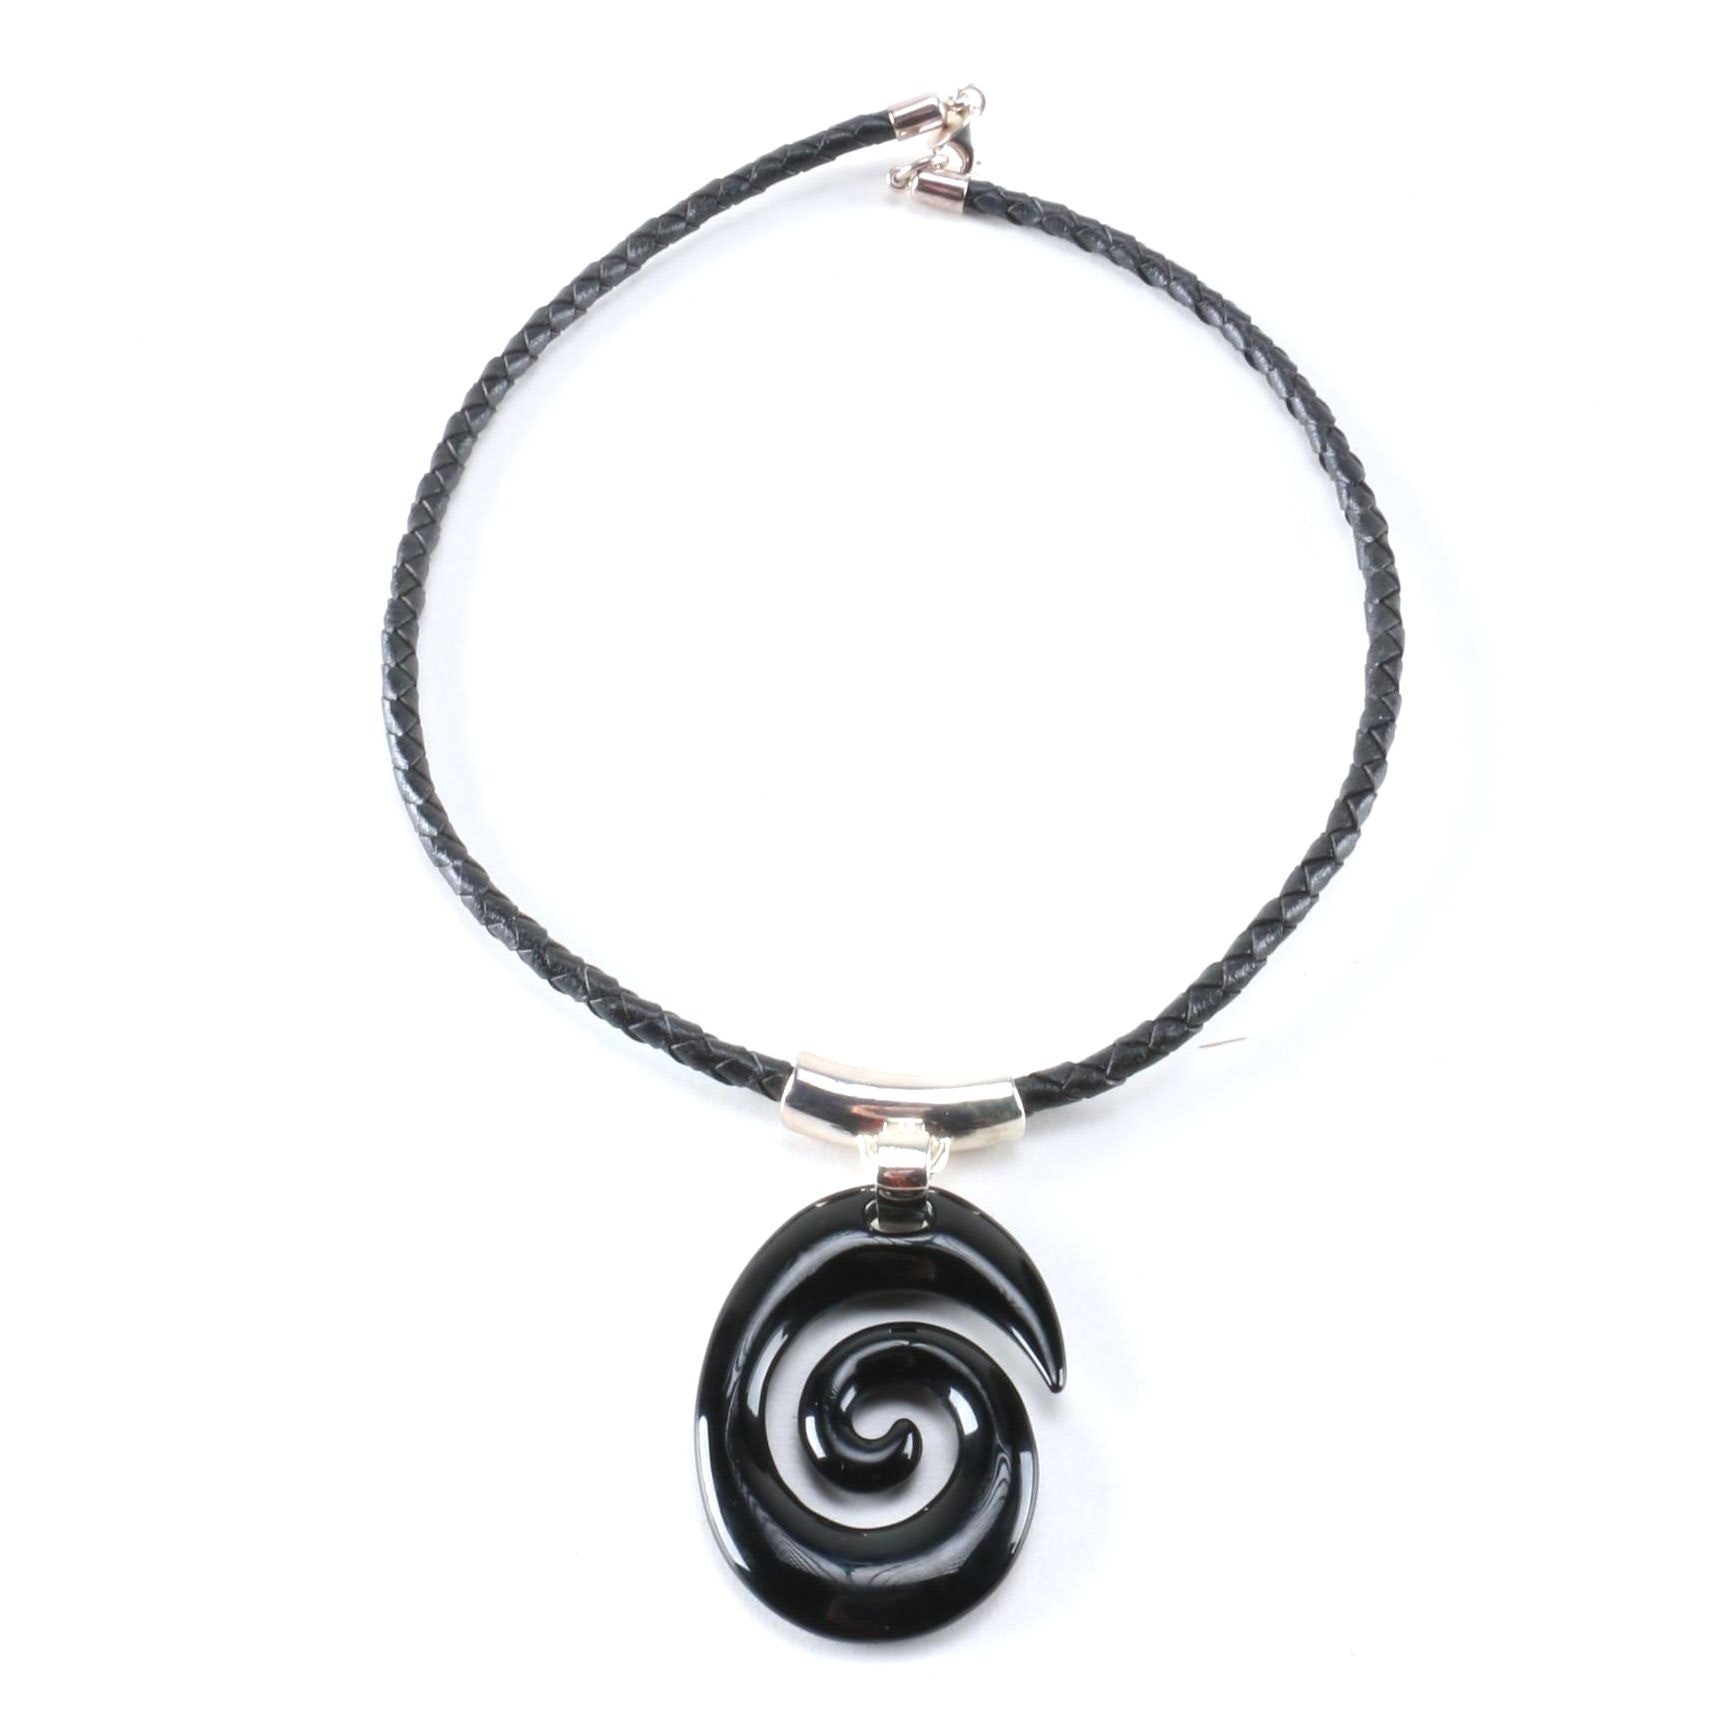 RLM Studio Leather, Sterling Silver, and Glass Pendant Necklace